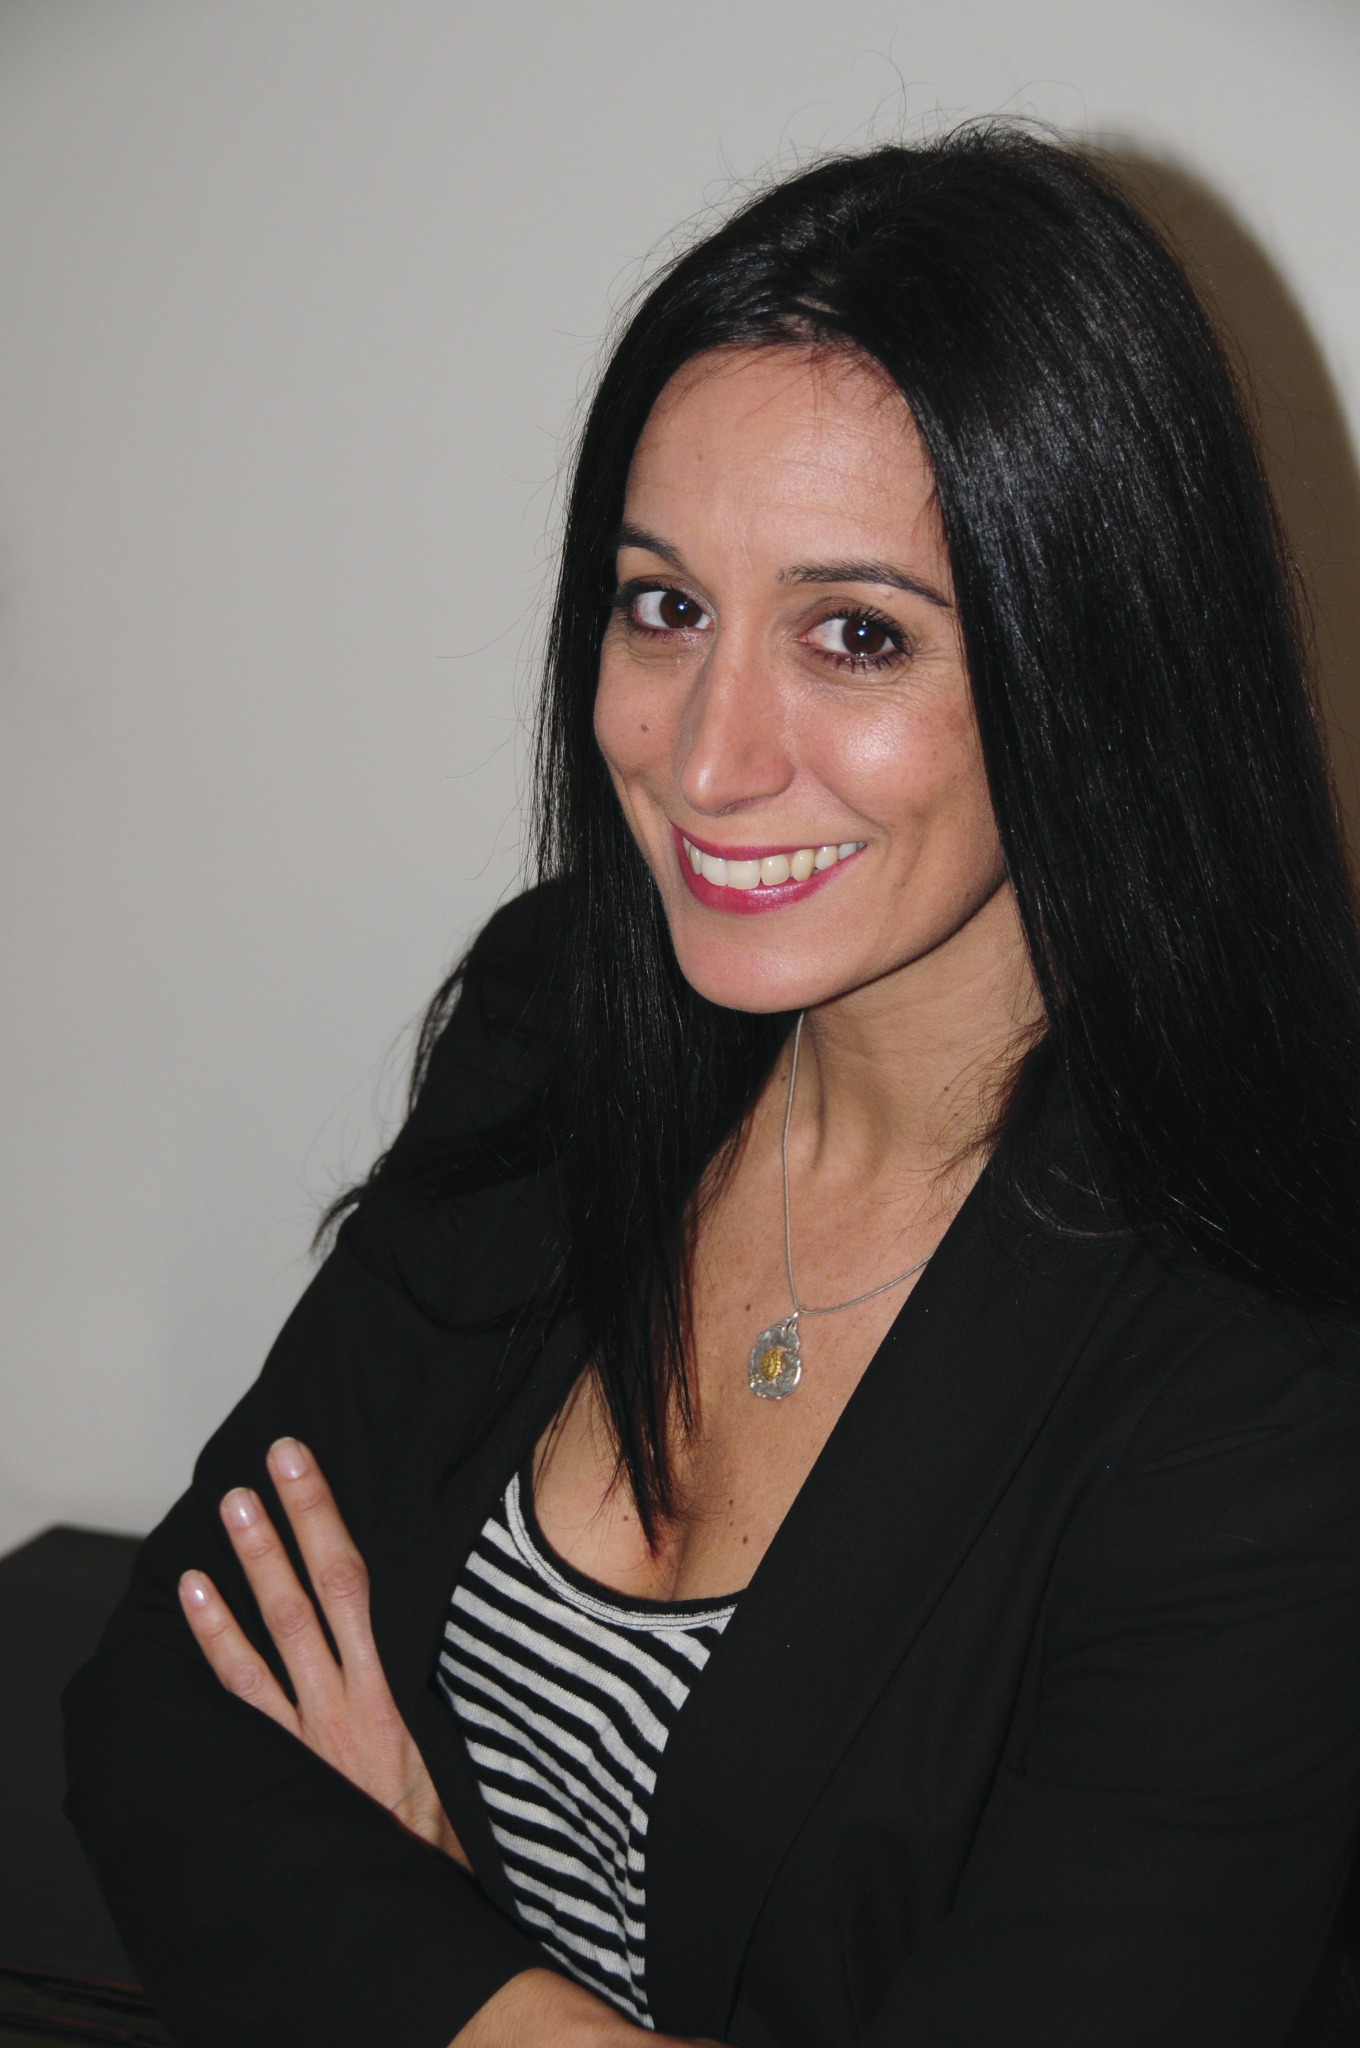 Above: Top Drawer's show director Alejandra Campos.